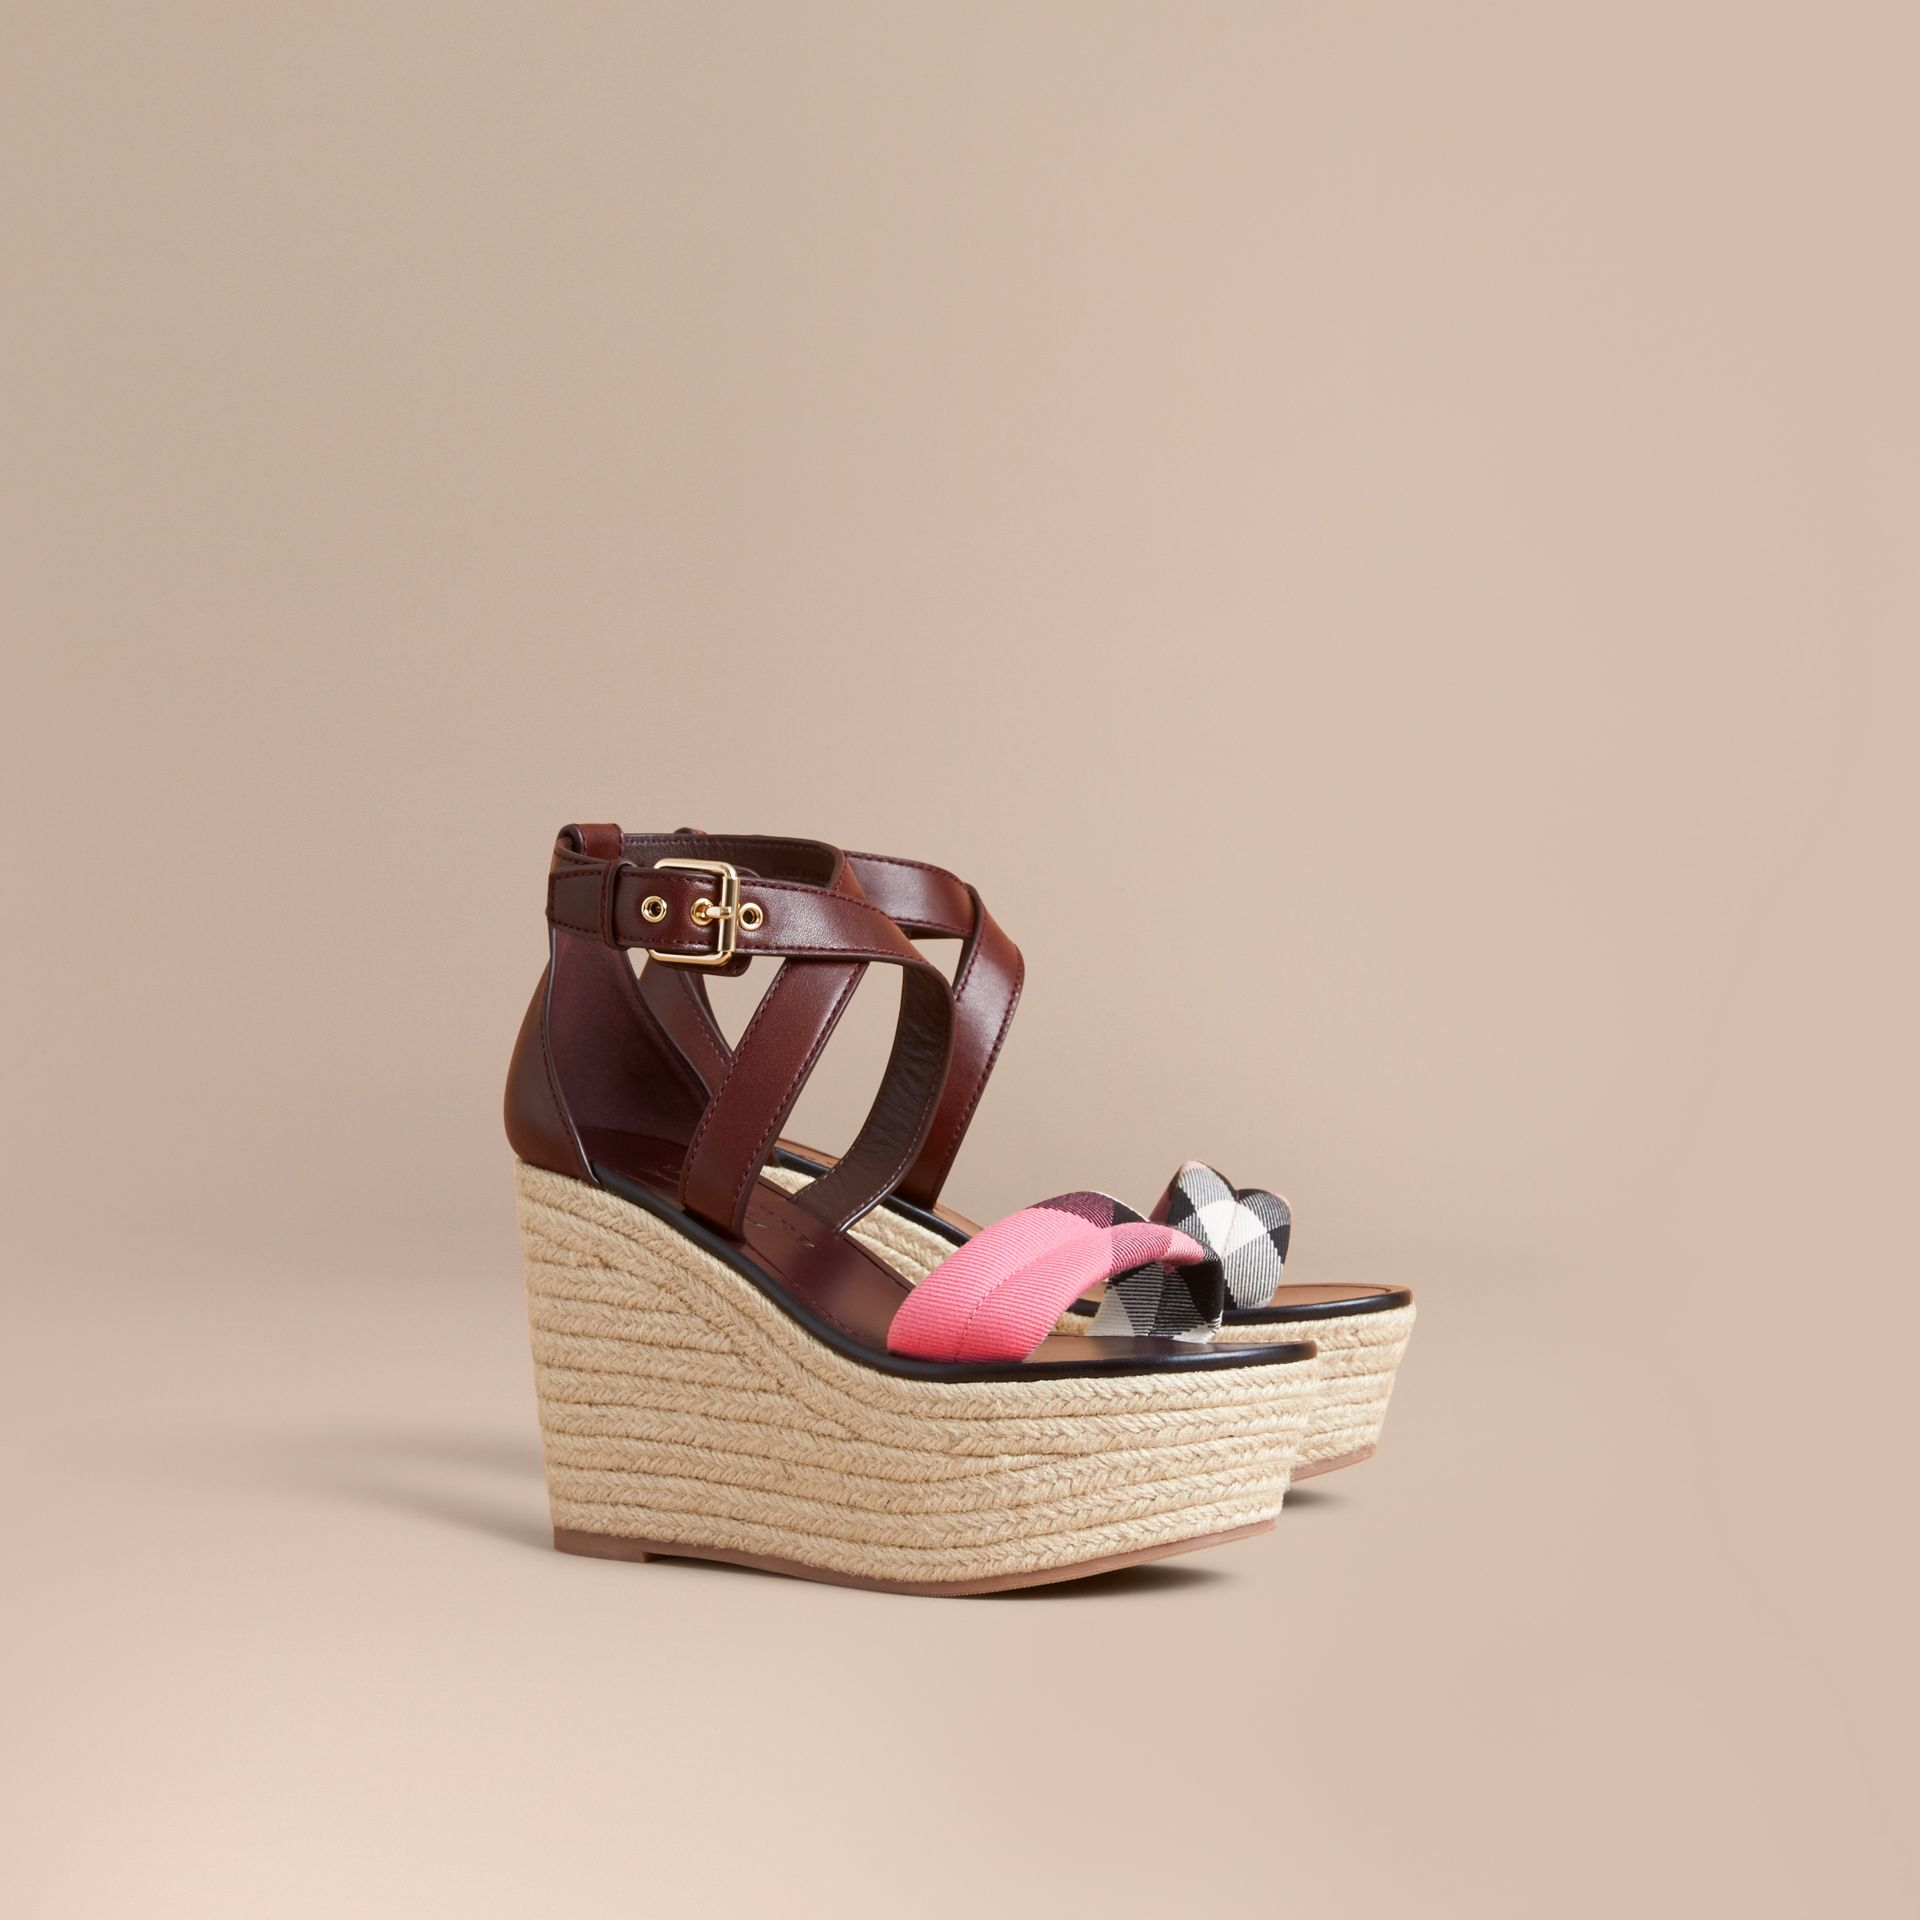 Leather and House Check Platform Espadrille Wedge Sandals in Cerise Purple - Women | Burberry Singapore - gallery image 1